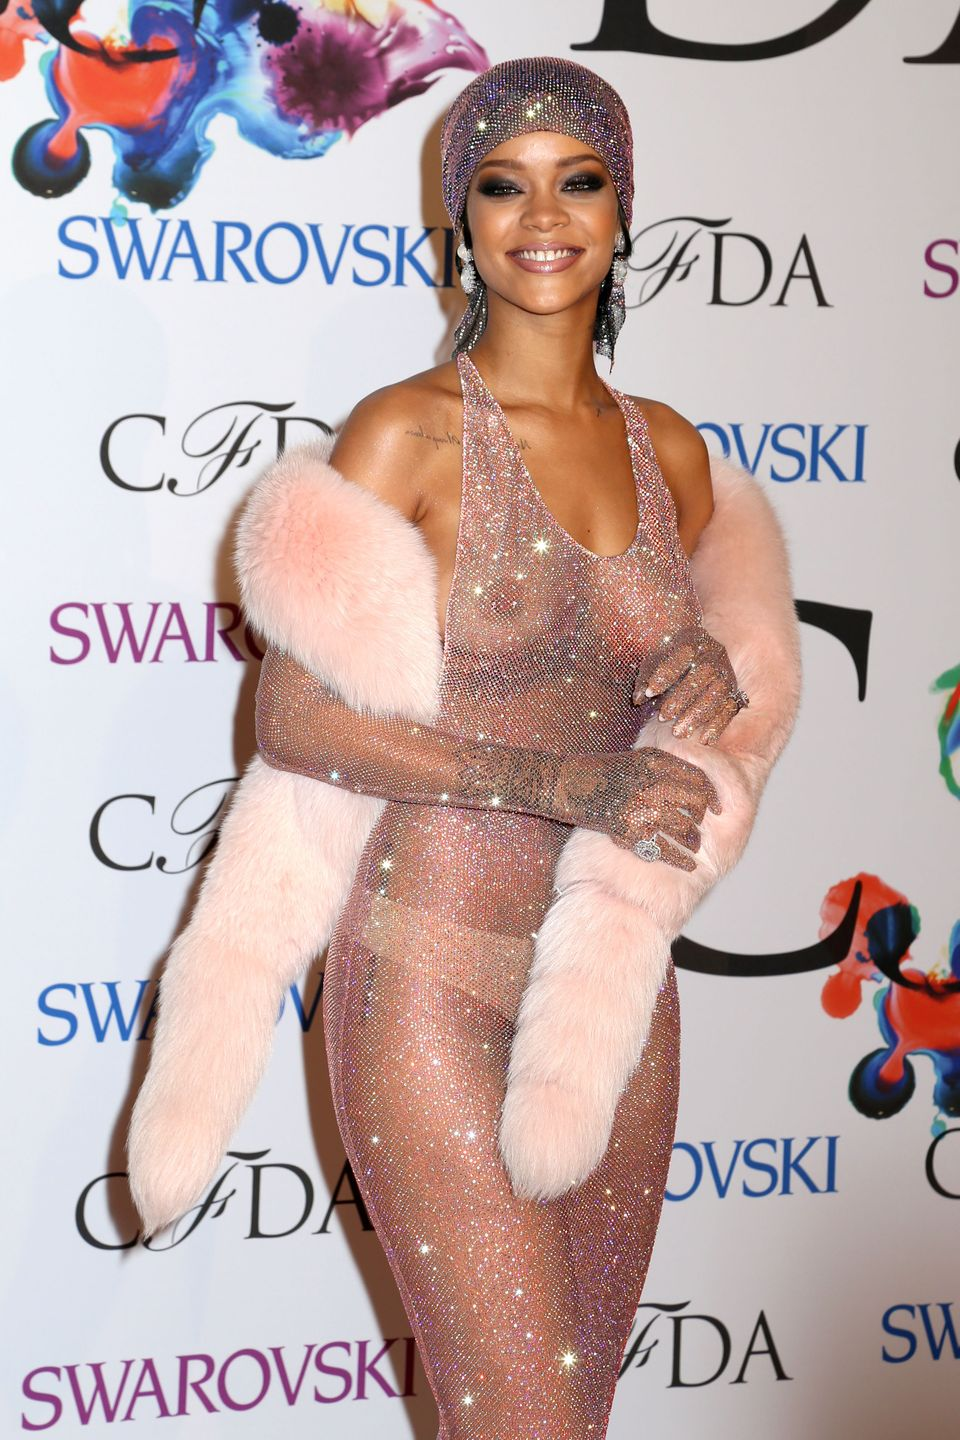 Rihanna attends the 2014 CFDA Awards at Lincoln Center in New York City.